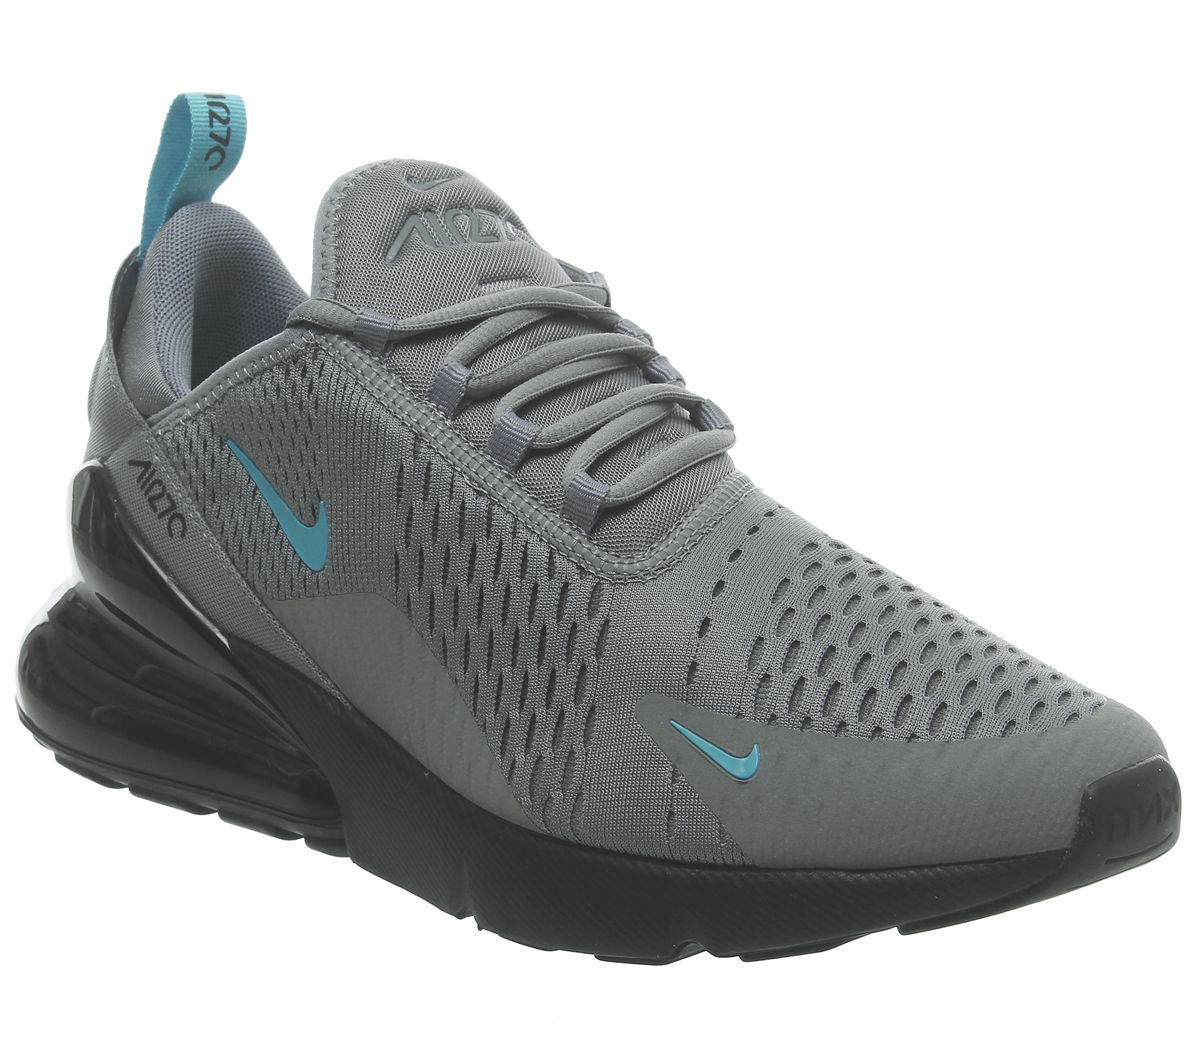 e07214255e2be Nike Air Max 270 Trainers Cool Grey Blue Fury Black - His trainers